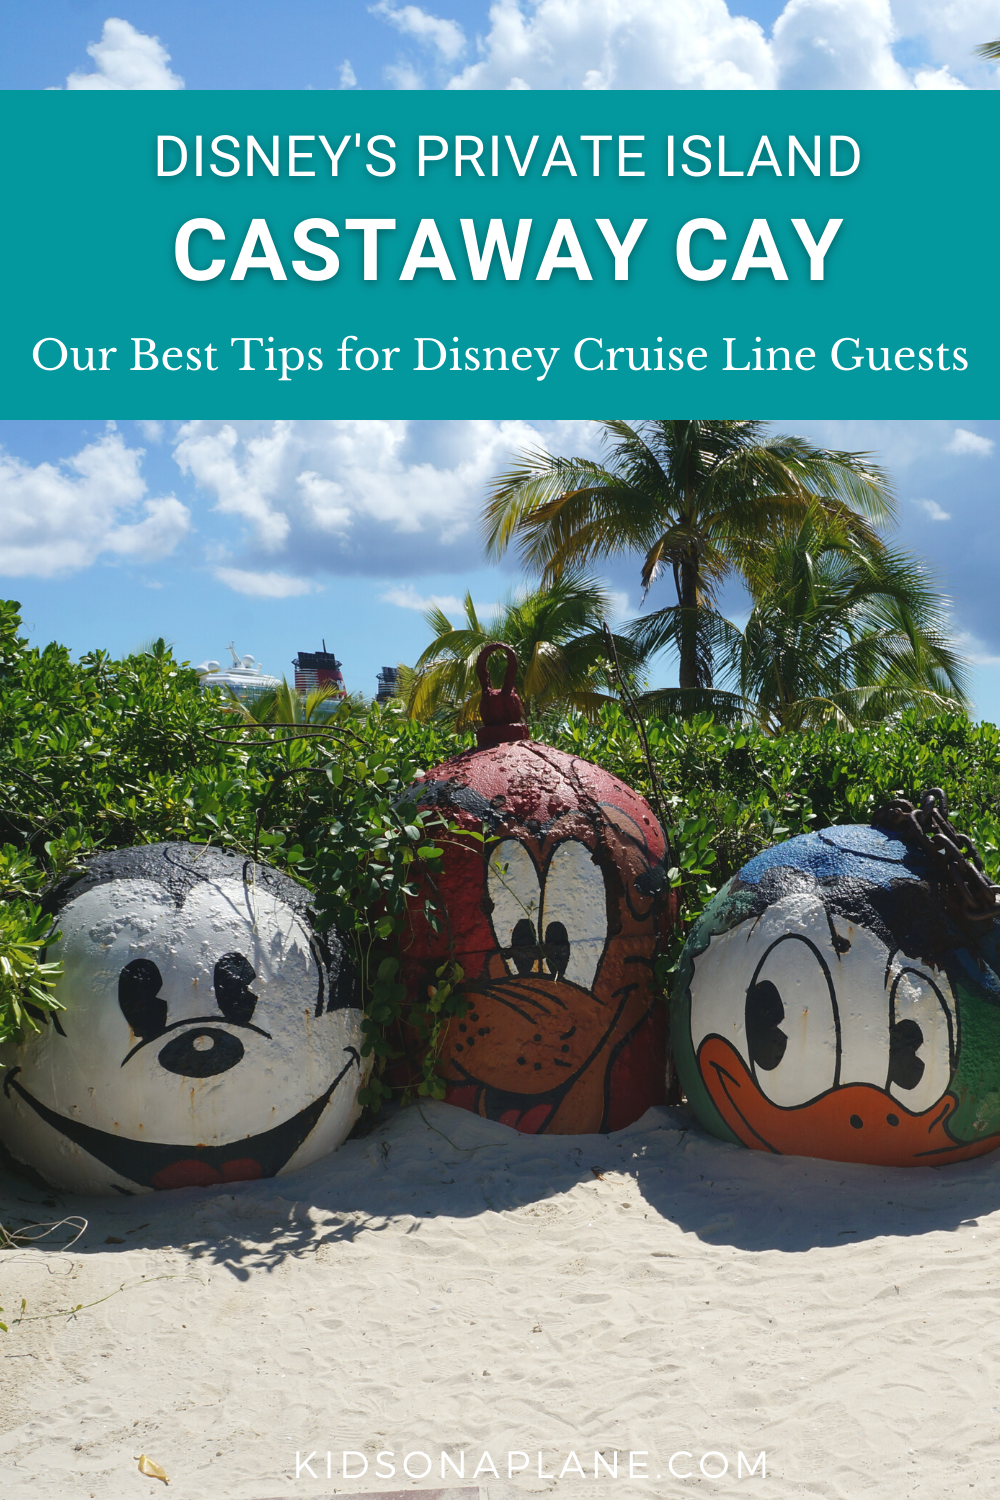 Tips for Disney Cruise Line Guests Visiting Castaway Cay - Disneys Private Island in the Bahamas